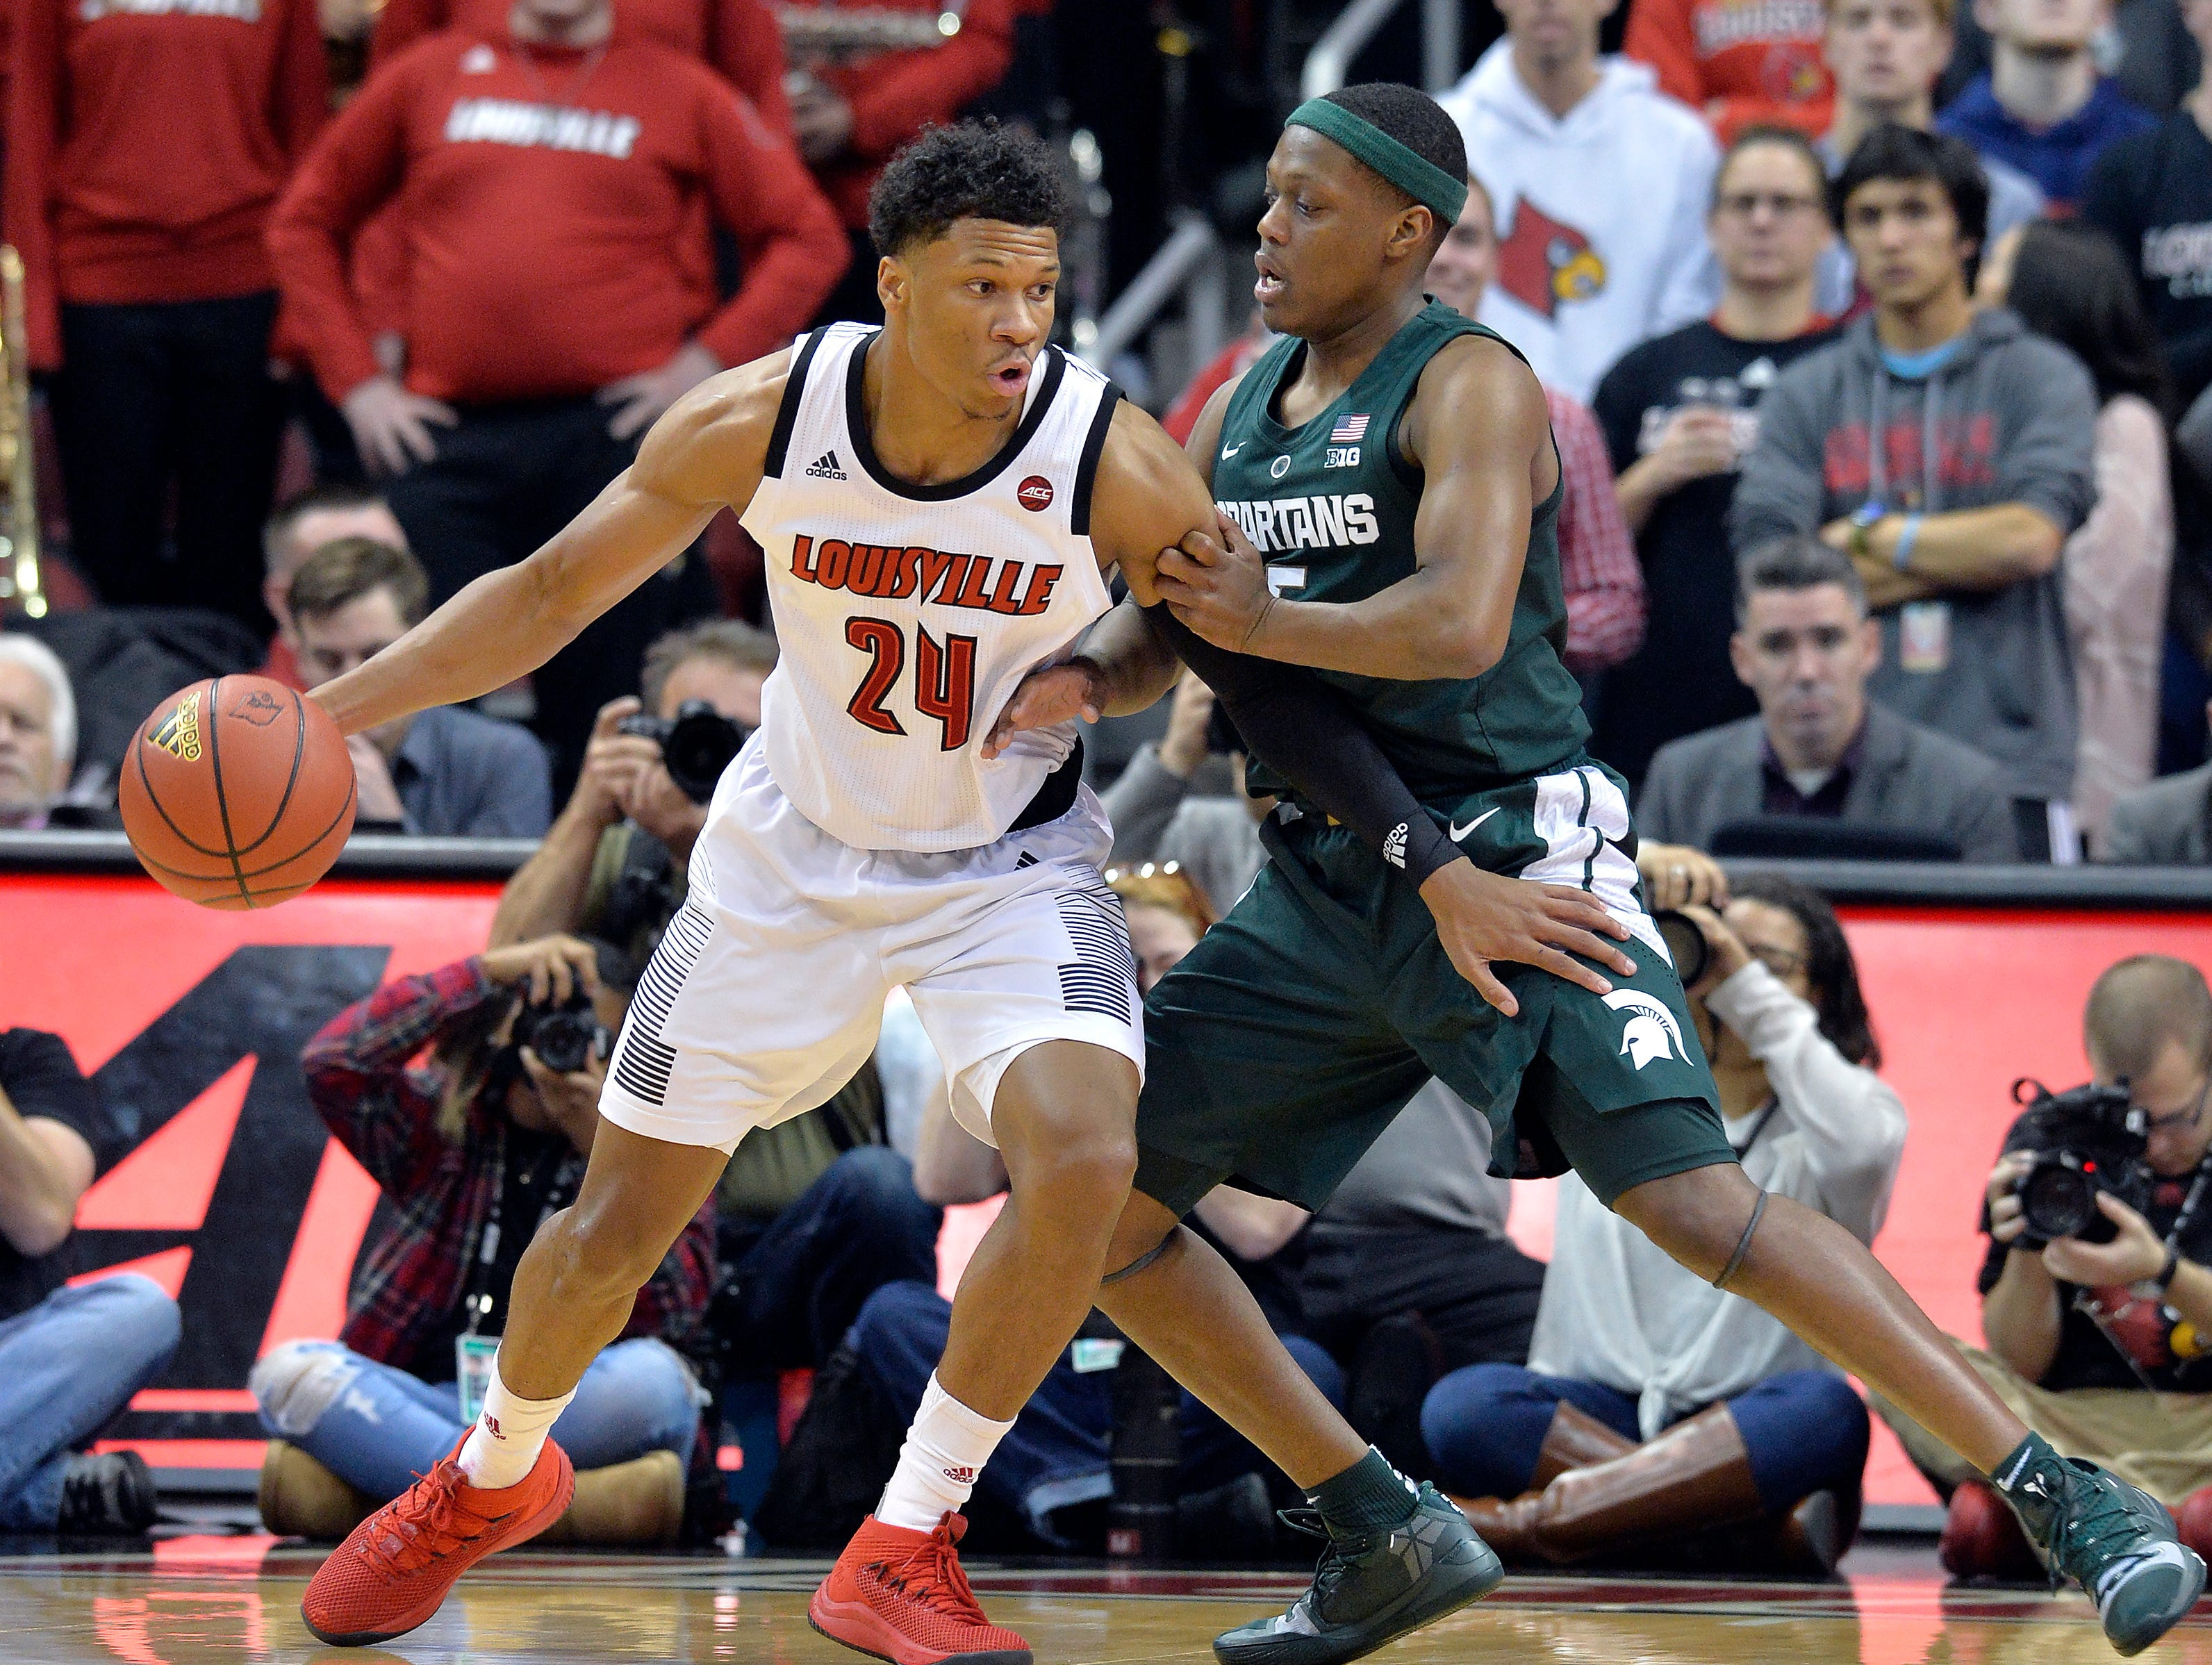 Louisville forward Dwayne Sutton (24) attempts to work his way around the defense of Michigan State guard Cassius Winston (5) during the first half.